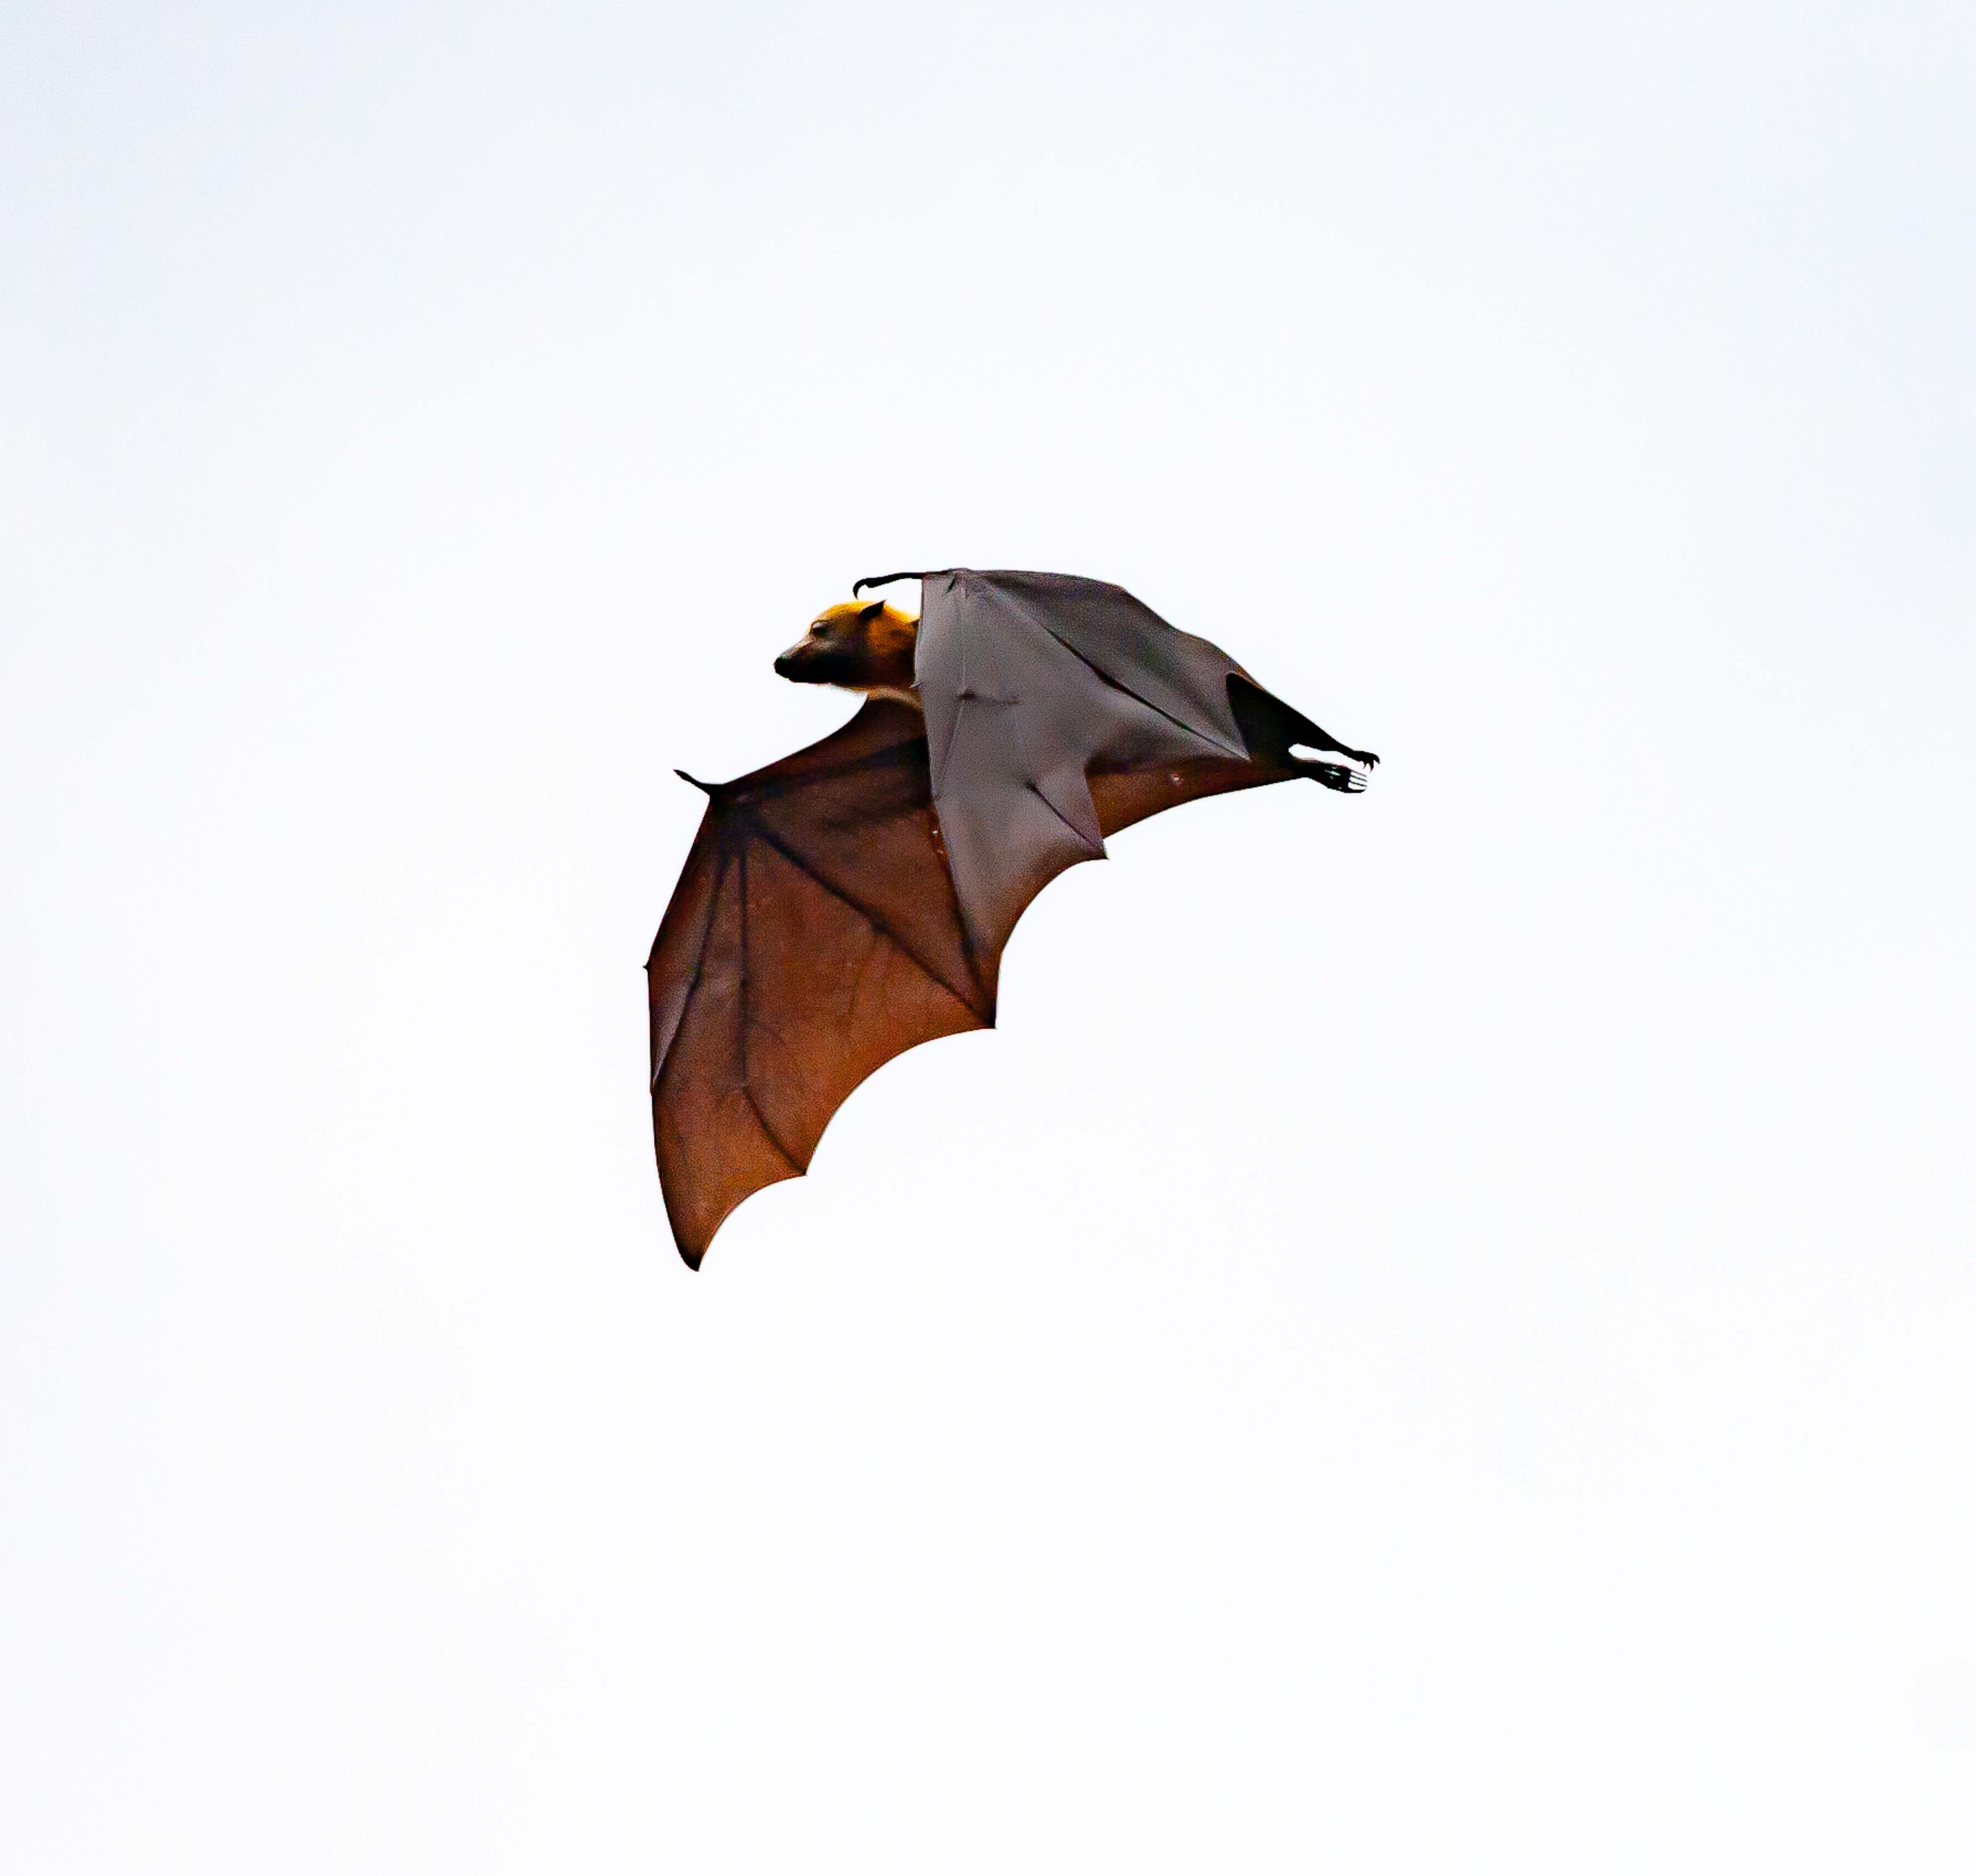 Seram, Kaifin, Flying Fox, 2006